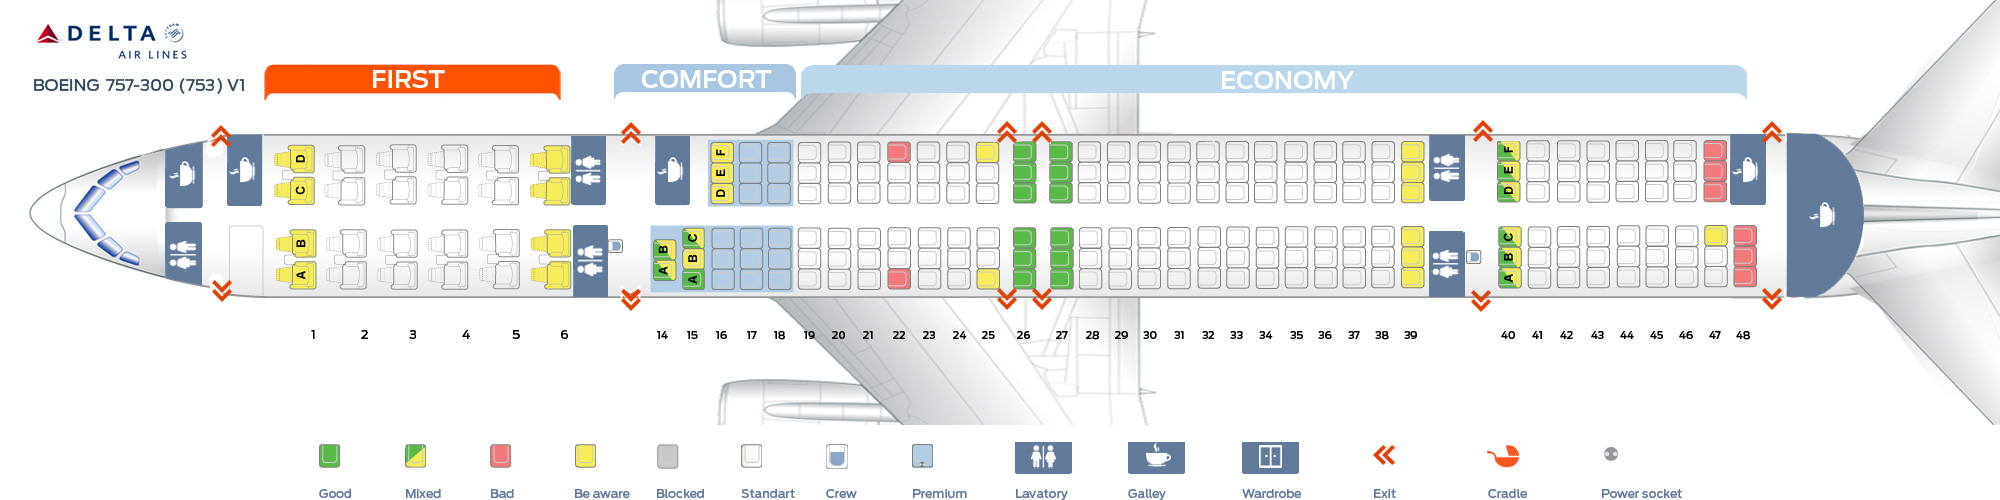 Seat_map_Delta_Airlines_Boeing_757-300_v1_753